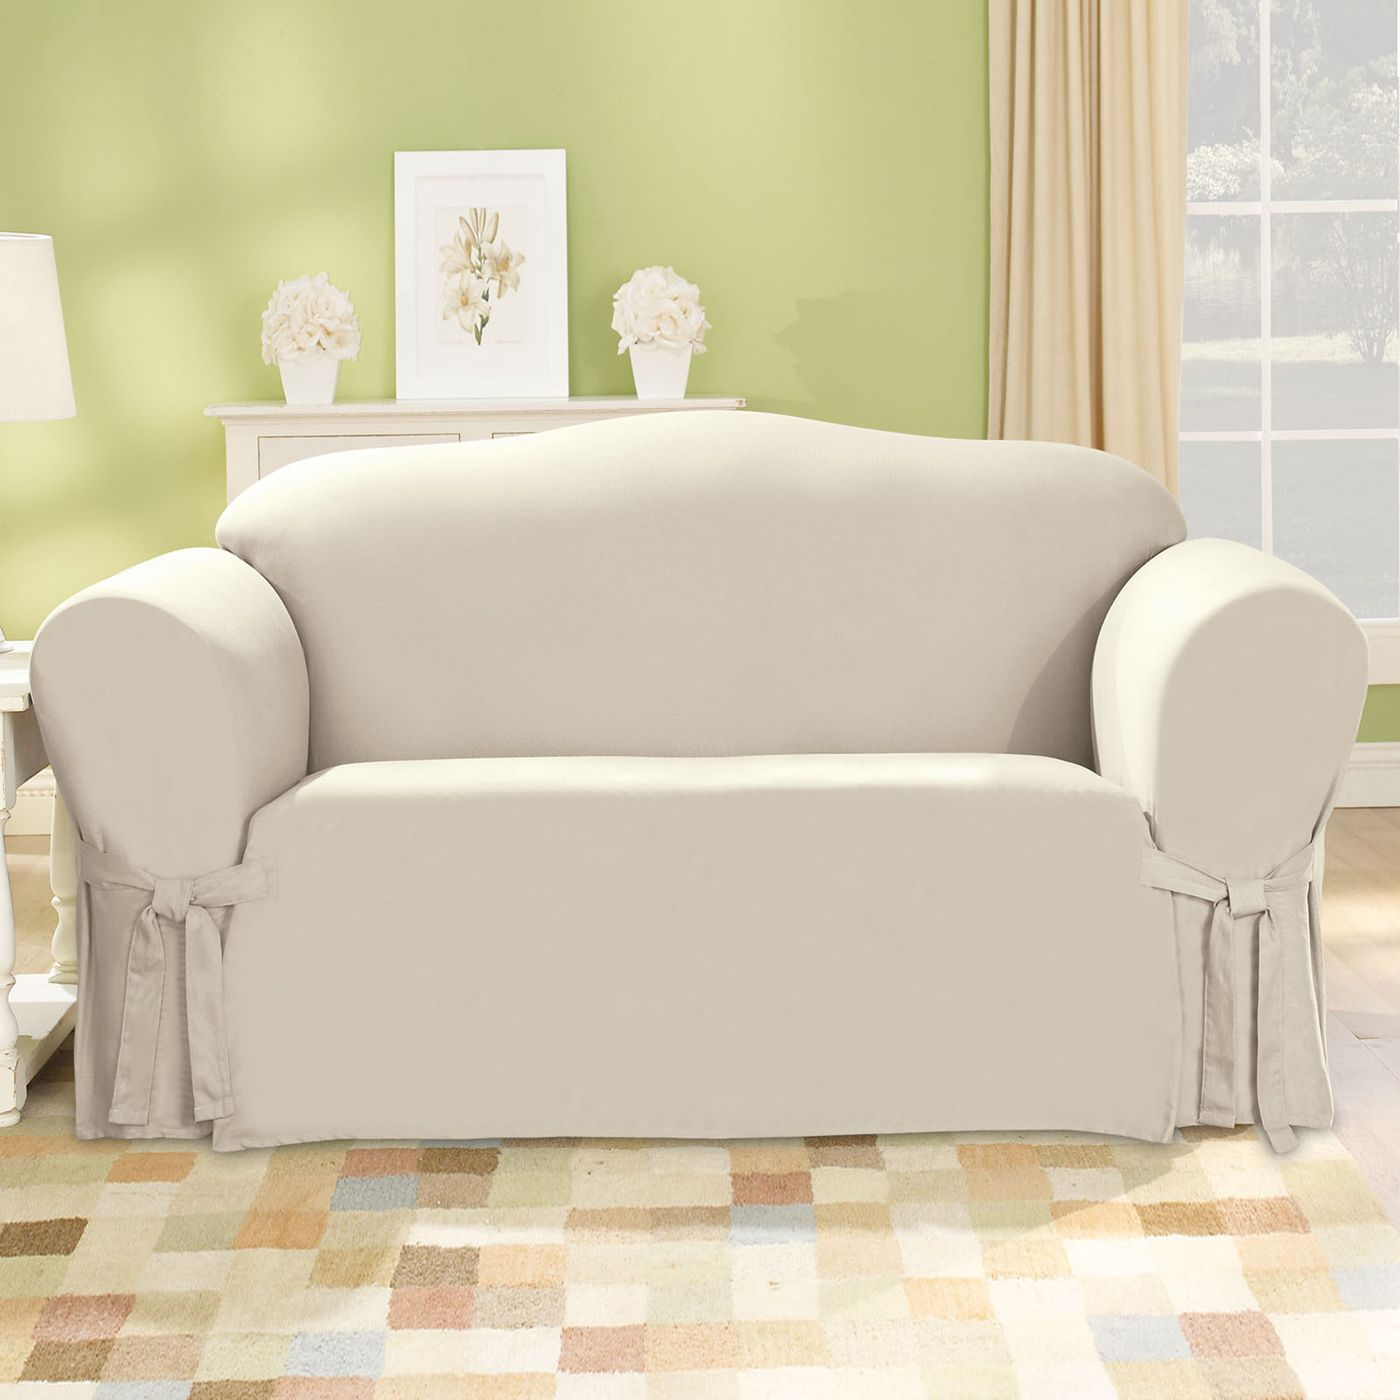 Cotton Duck Sofa Slipcover Http Homerock Xyz